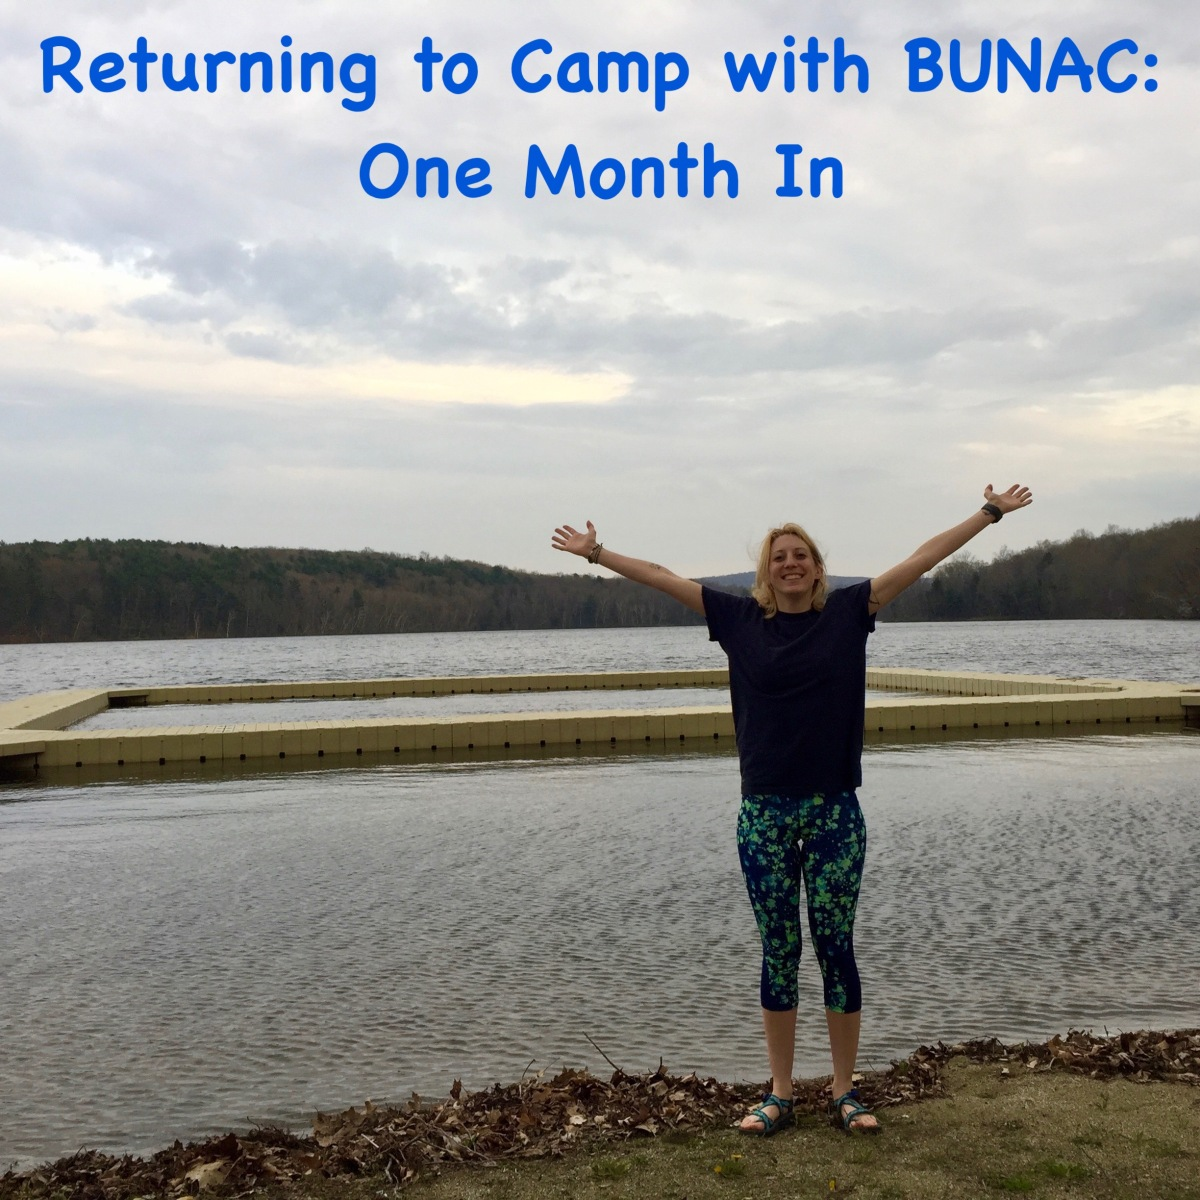 Returning to Camp with BUNAC: One Month In